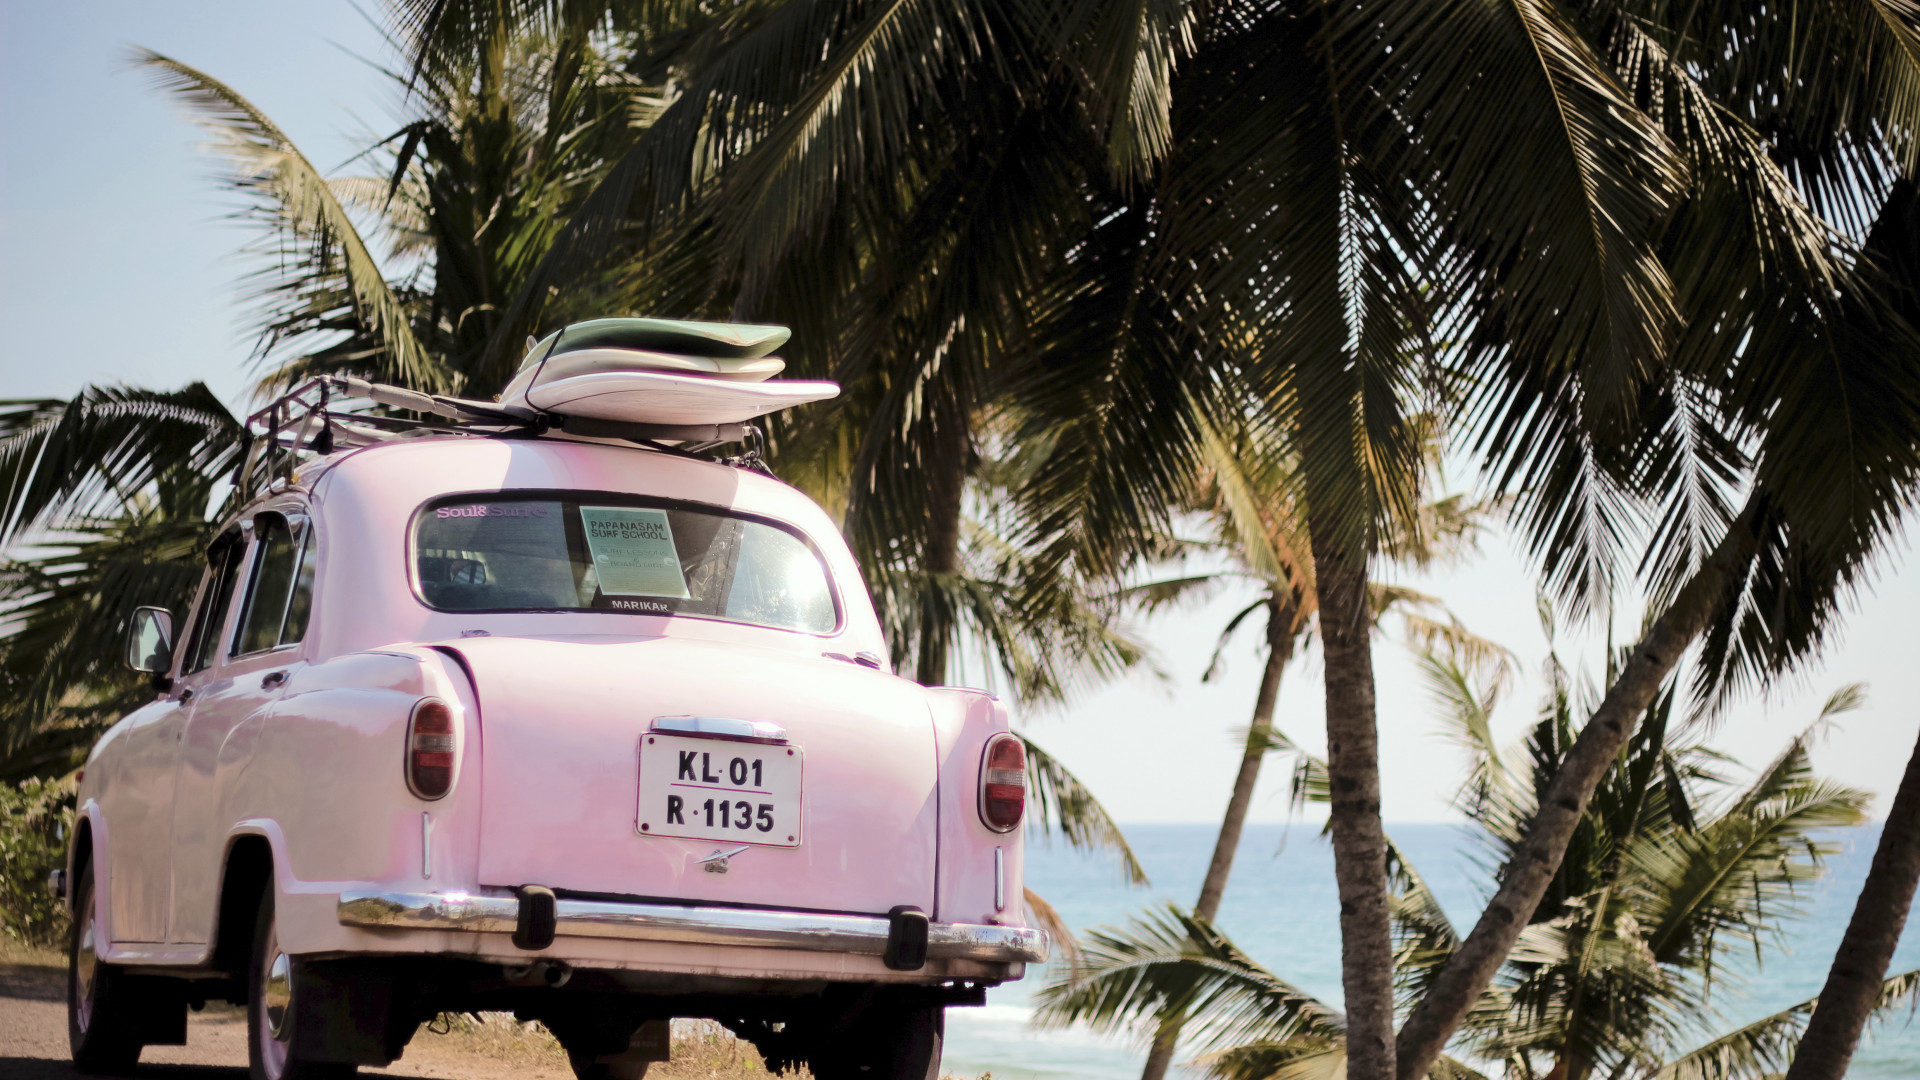 Soul & Surf has a camp in Kerala, India